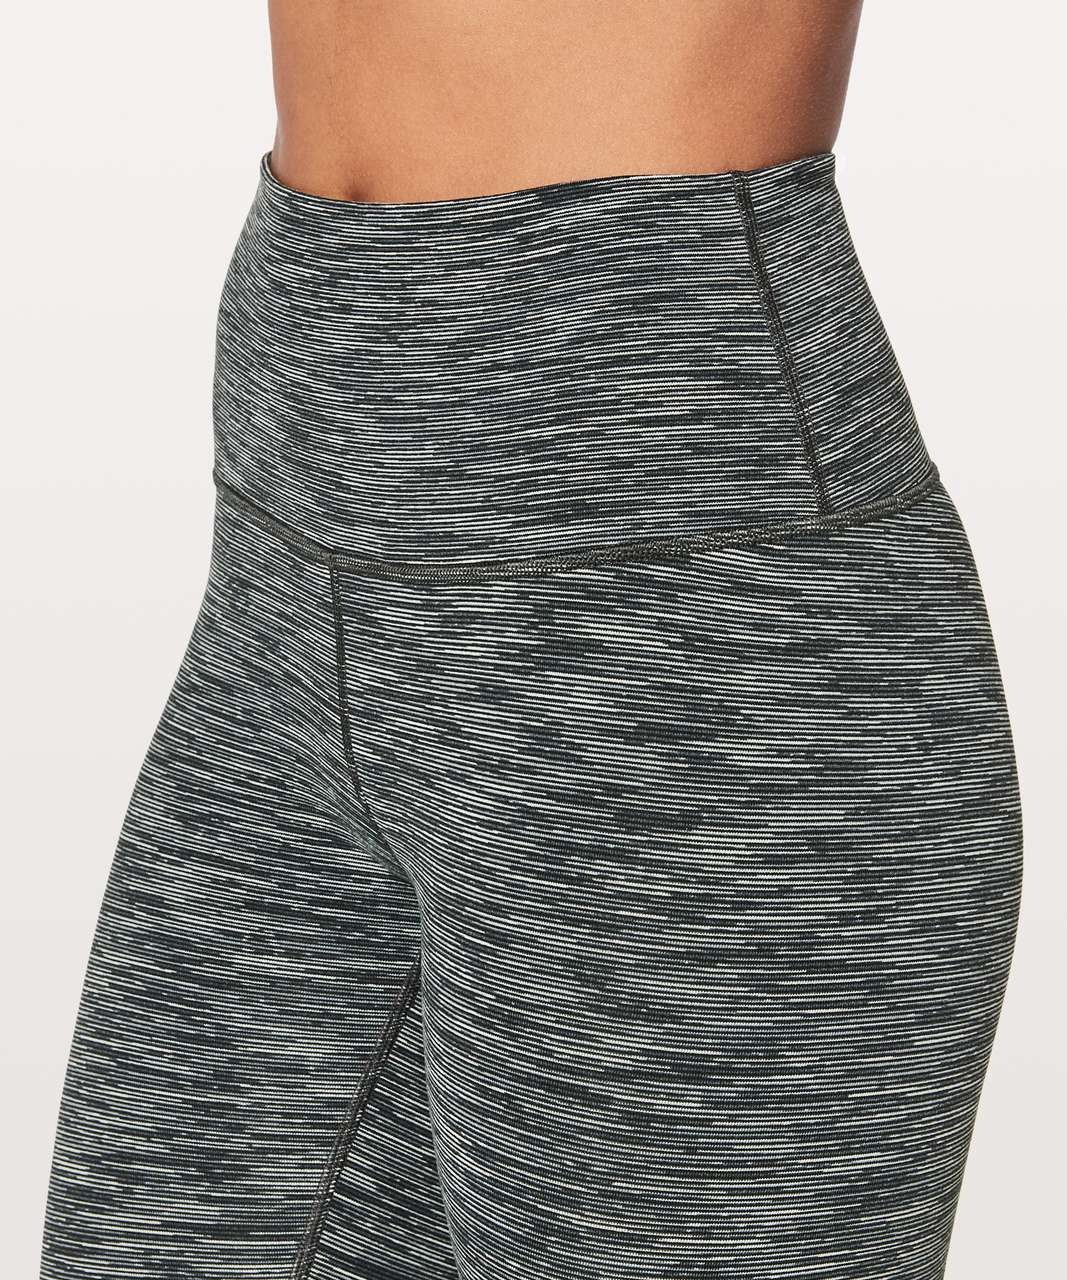 """Lululemon Wunder Under Hi-Rise 7/8 Tight *25"""" - Wee Are From Space Black Slate"""